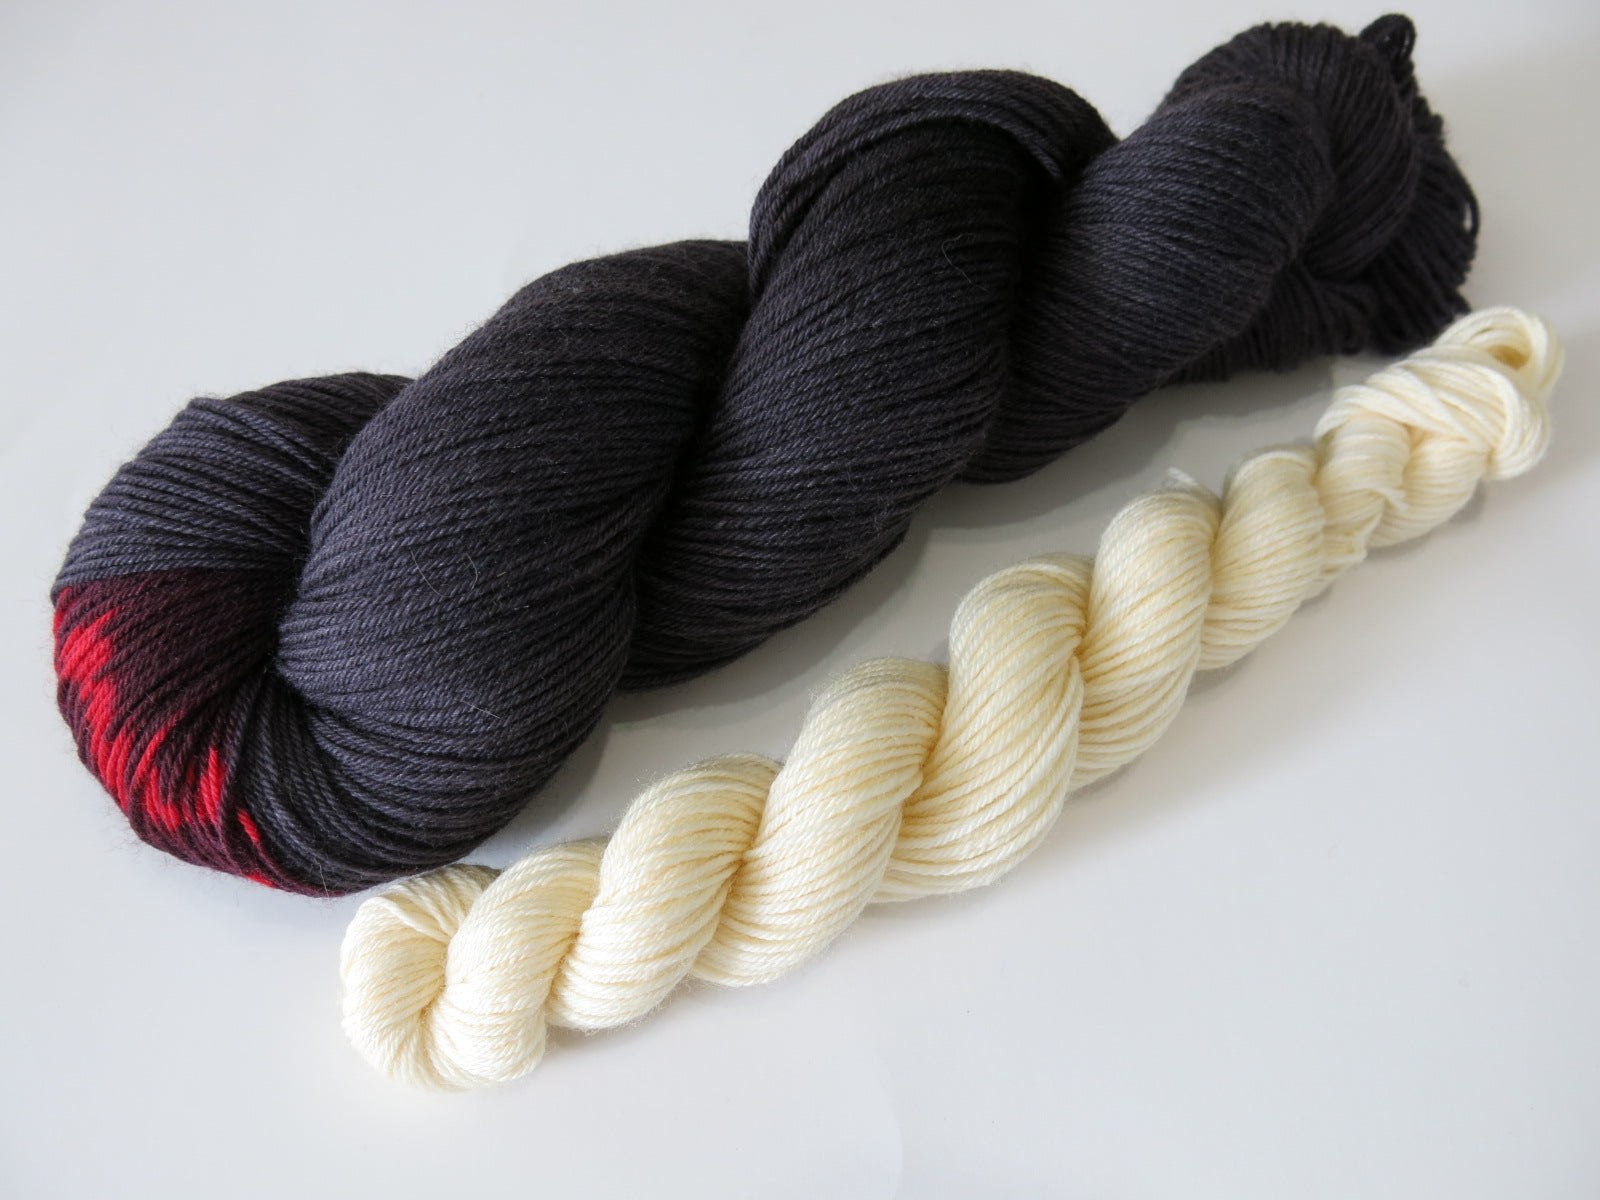 sock yarn skeins inspired by black widos and their ivory egg sacs